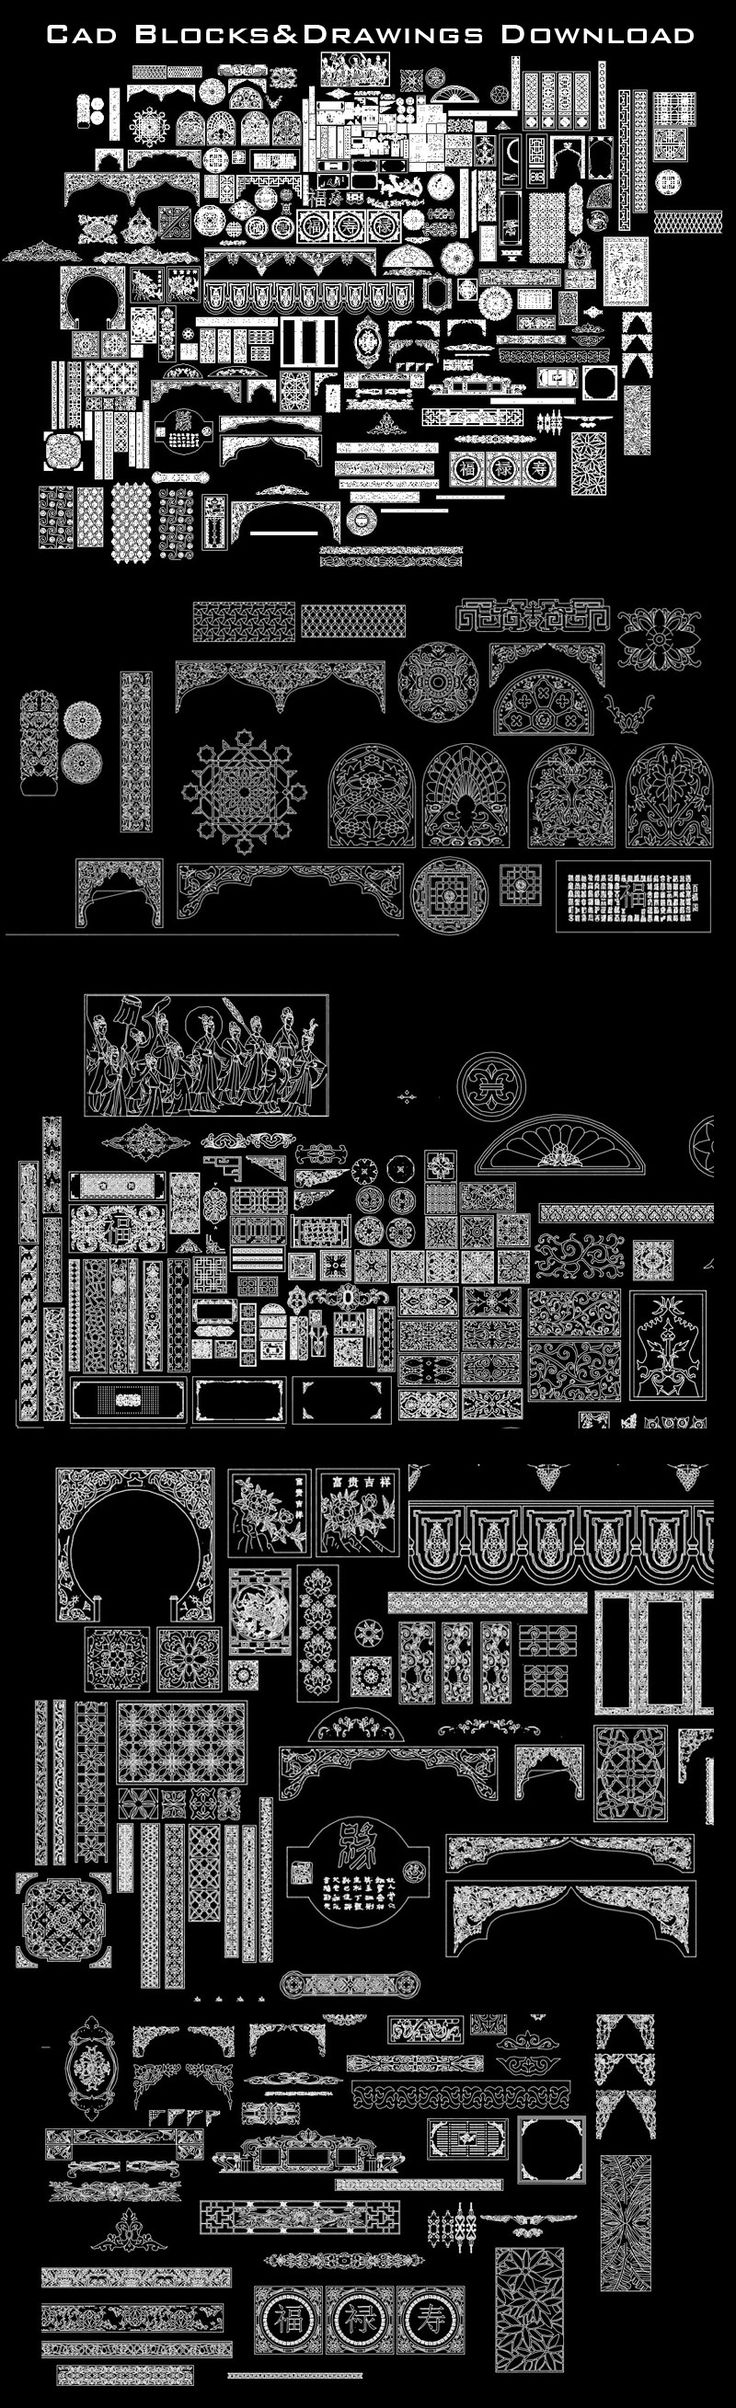 18 Best Kazali016 Images On Pinterest Architectural Drawings Electrical Circuit Design Common Cad Drawingsautocad Blockscrazy Chinese Carved Download Decorative Elementschinese Carvedoutdoor Decoration